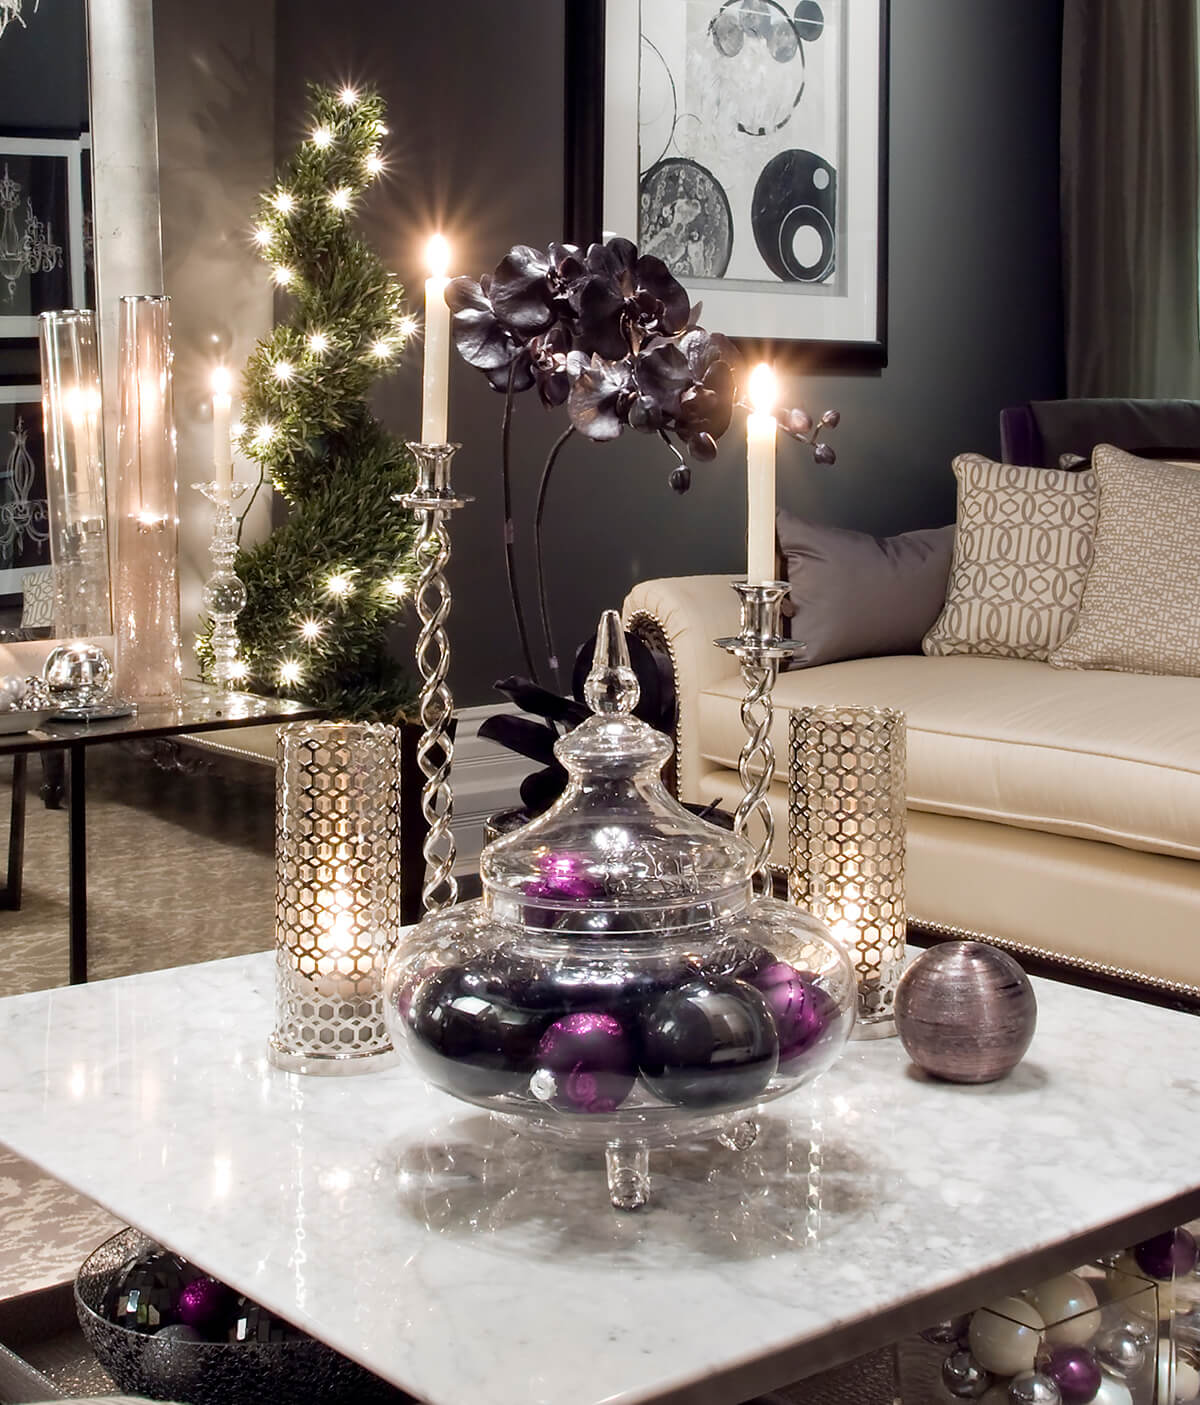 32 Best Christmas Living Room Decor Ideas and Designs for 2019